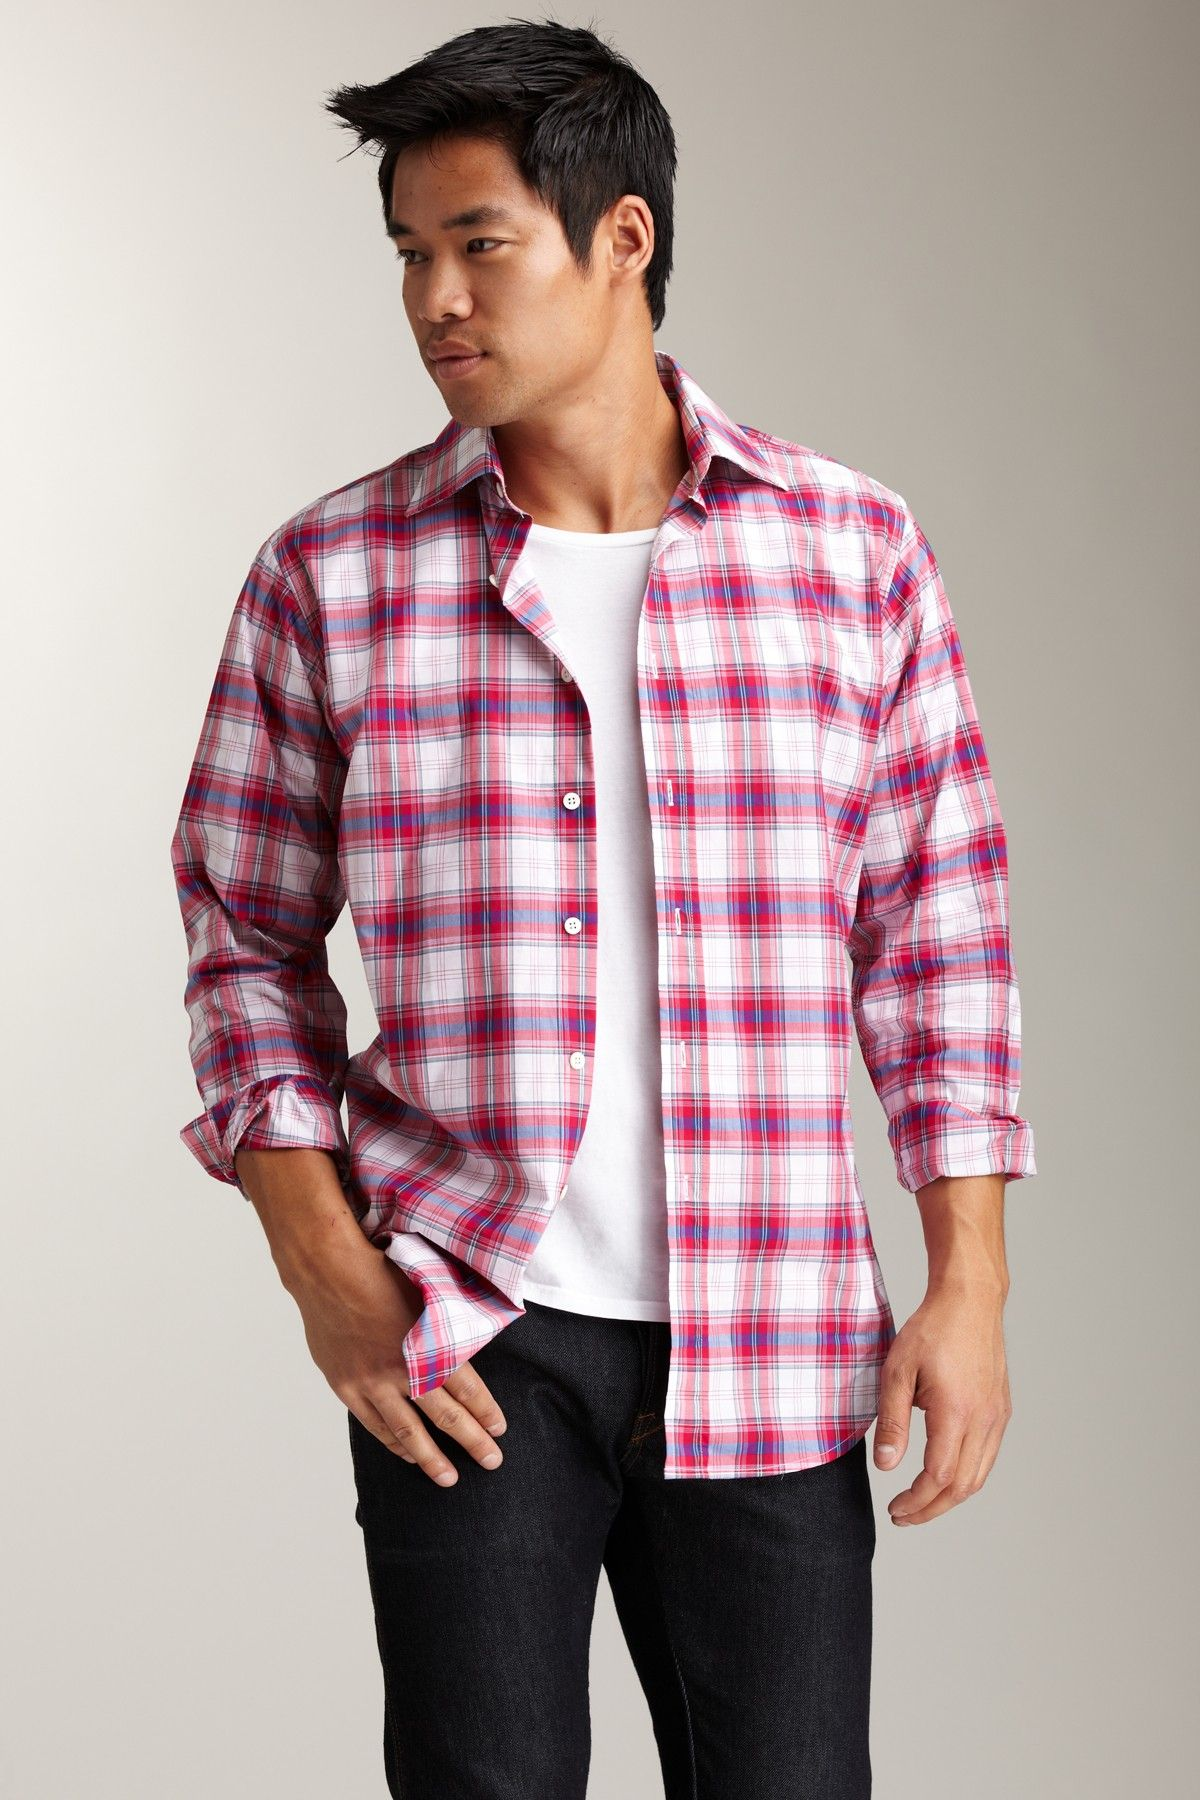 Flannel shirts 1990s  Red and Blue Plaid Shirt  Pinterest  Blue plaid and Products